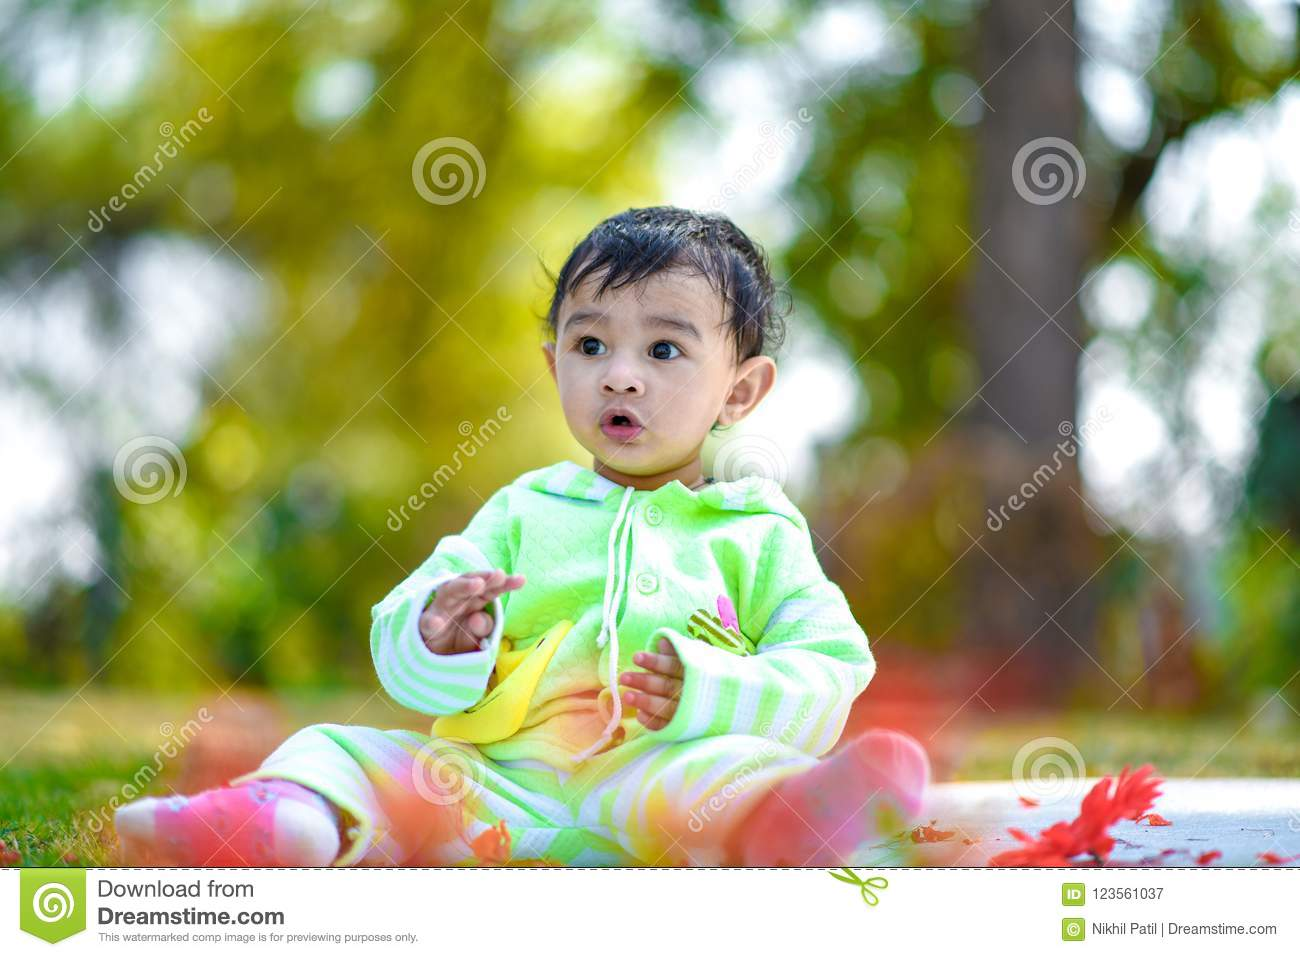 Cute Indian Baby Boy Playing At Garden Stock Image Image Of Cute Green 123561037